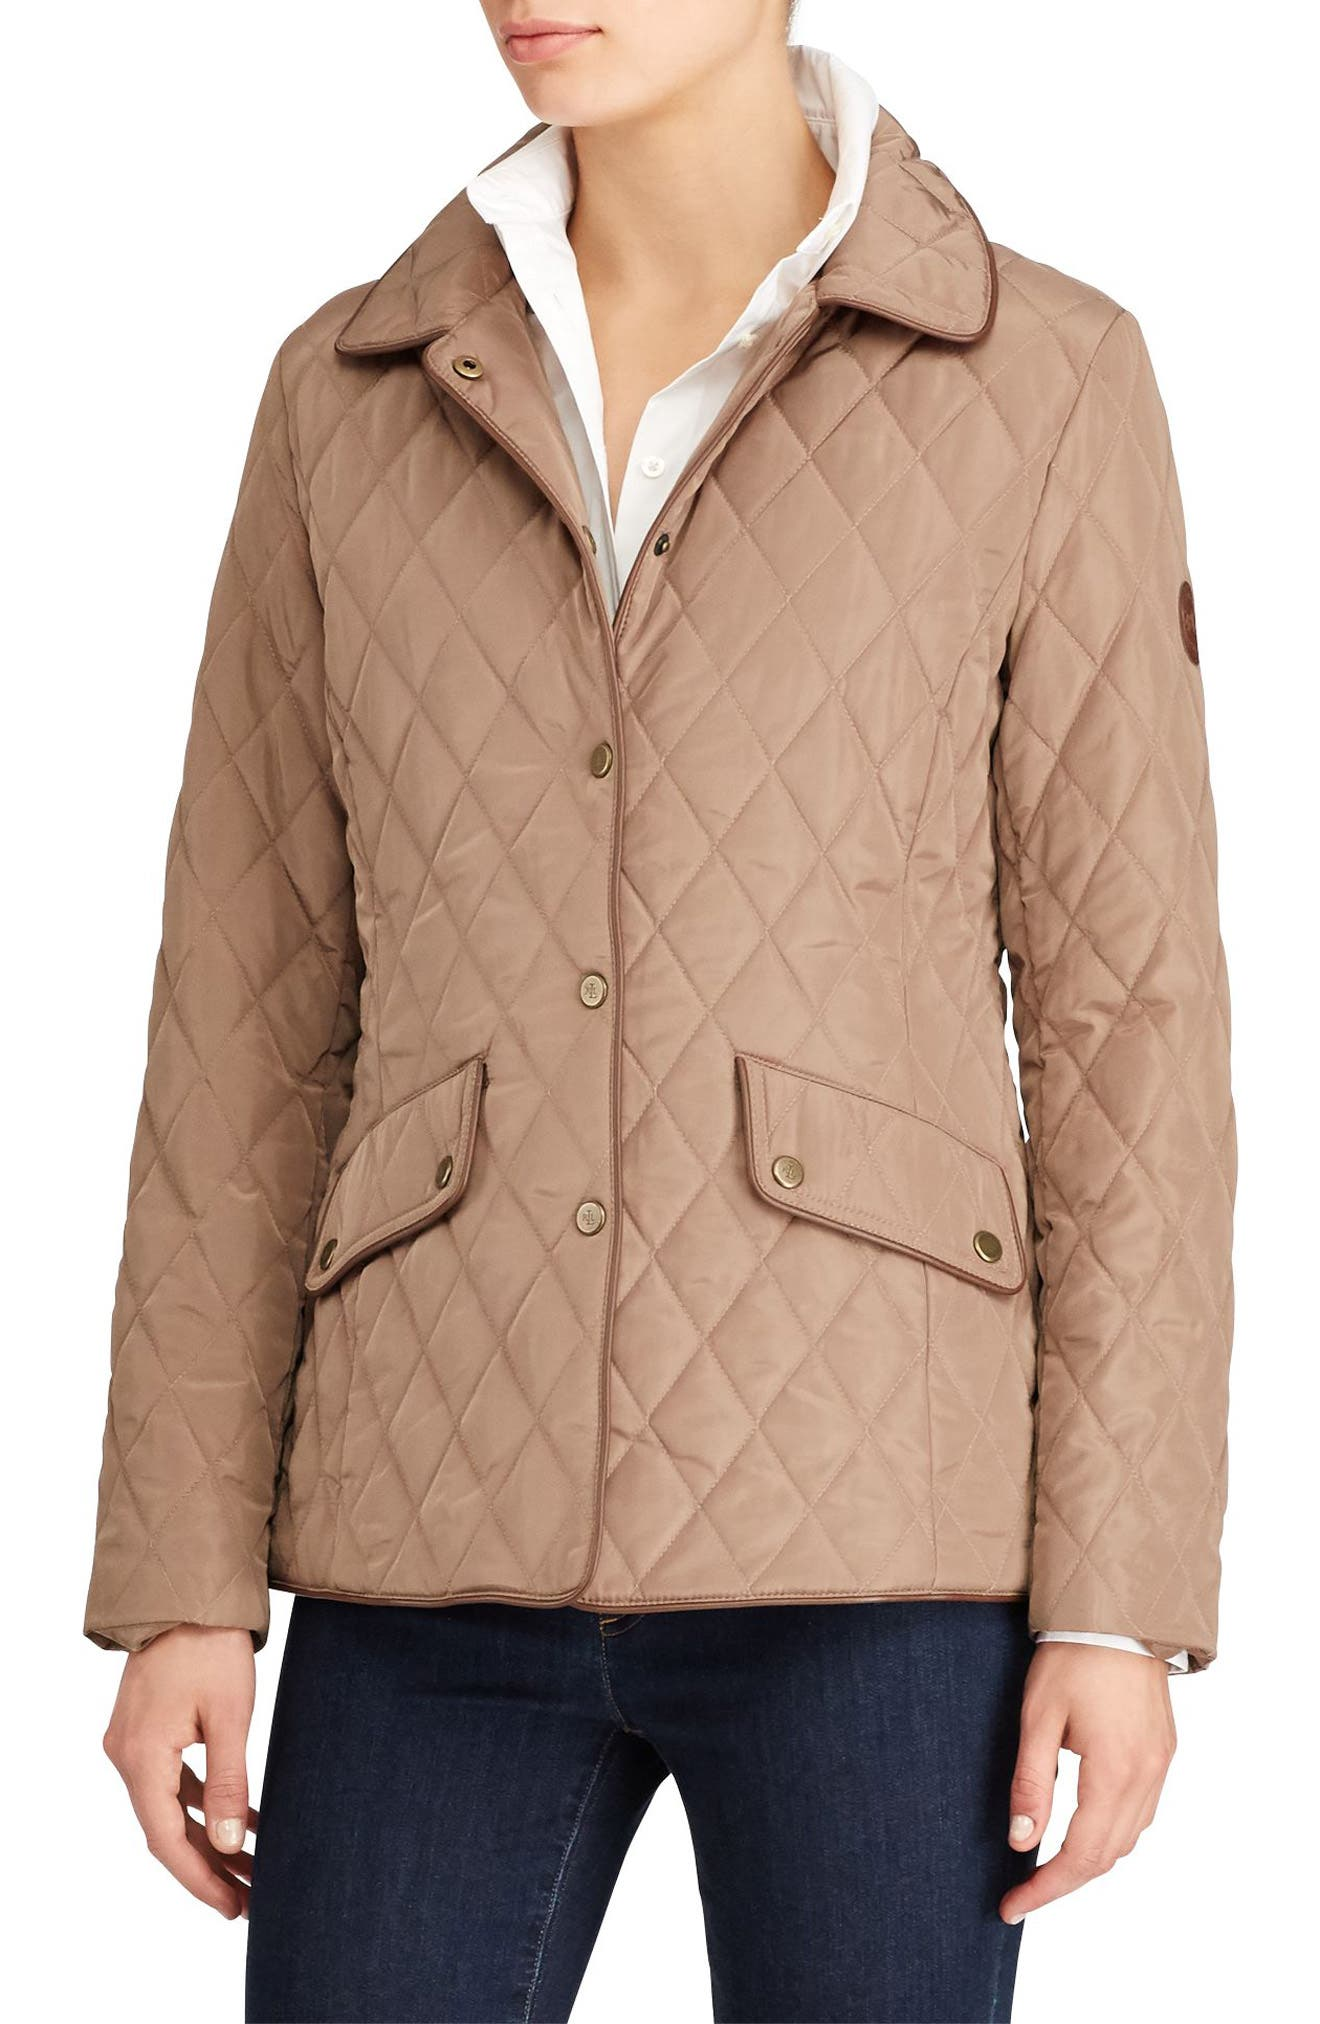 Nordstrom faux leather jacket